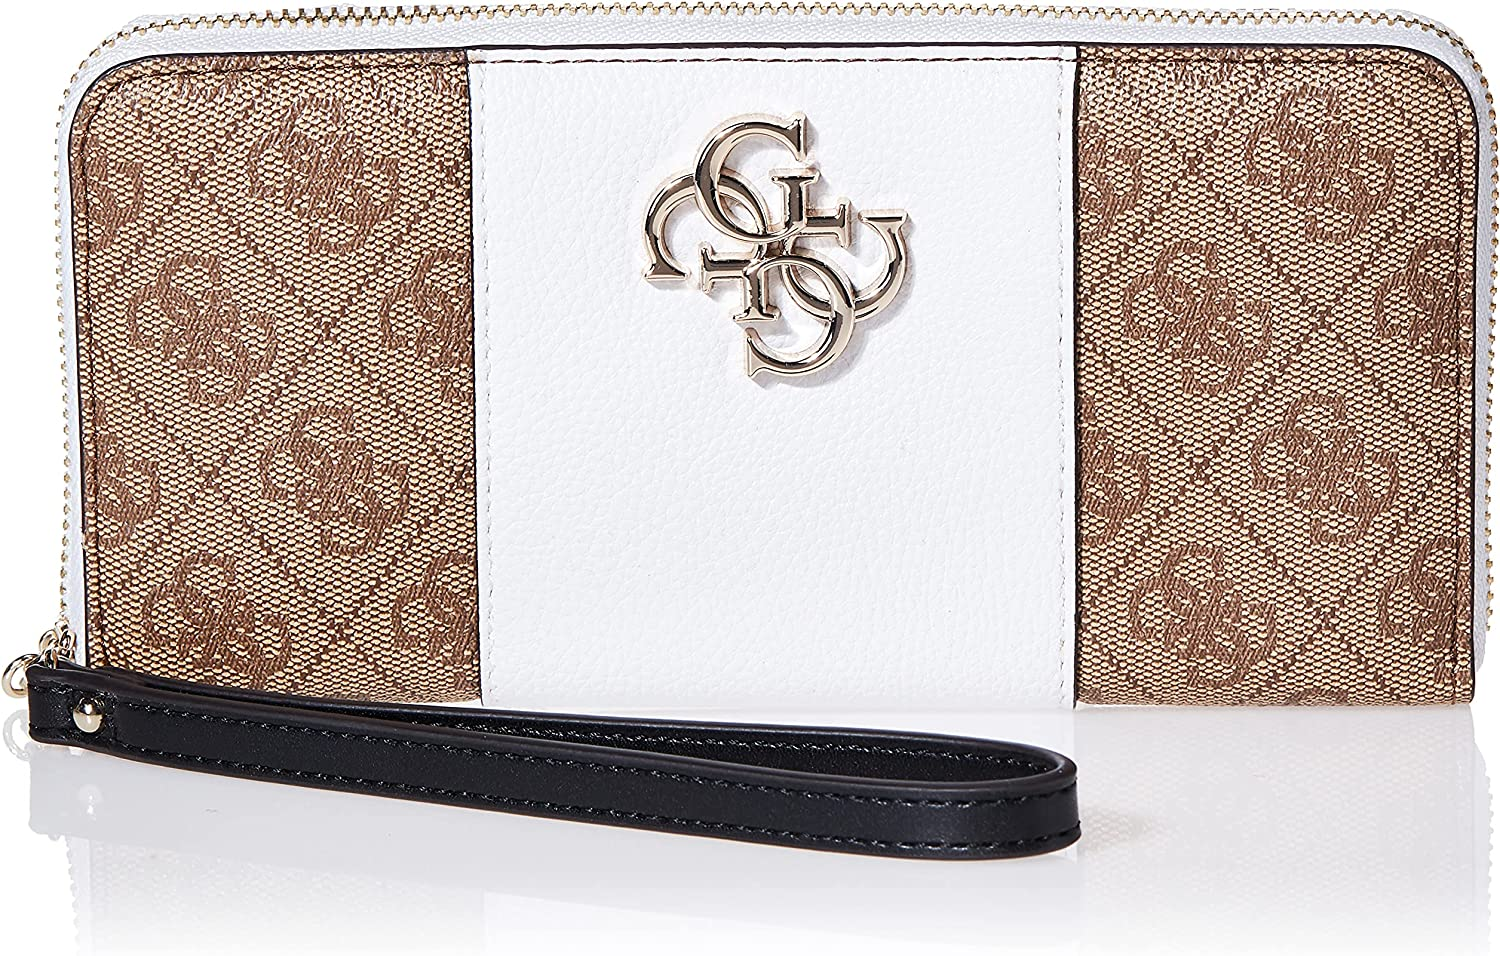 GUESS Noelle Large Zip 2021 spring and summer new Wallet Around 70% OFF Outlet Latte Multi